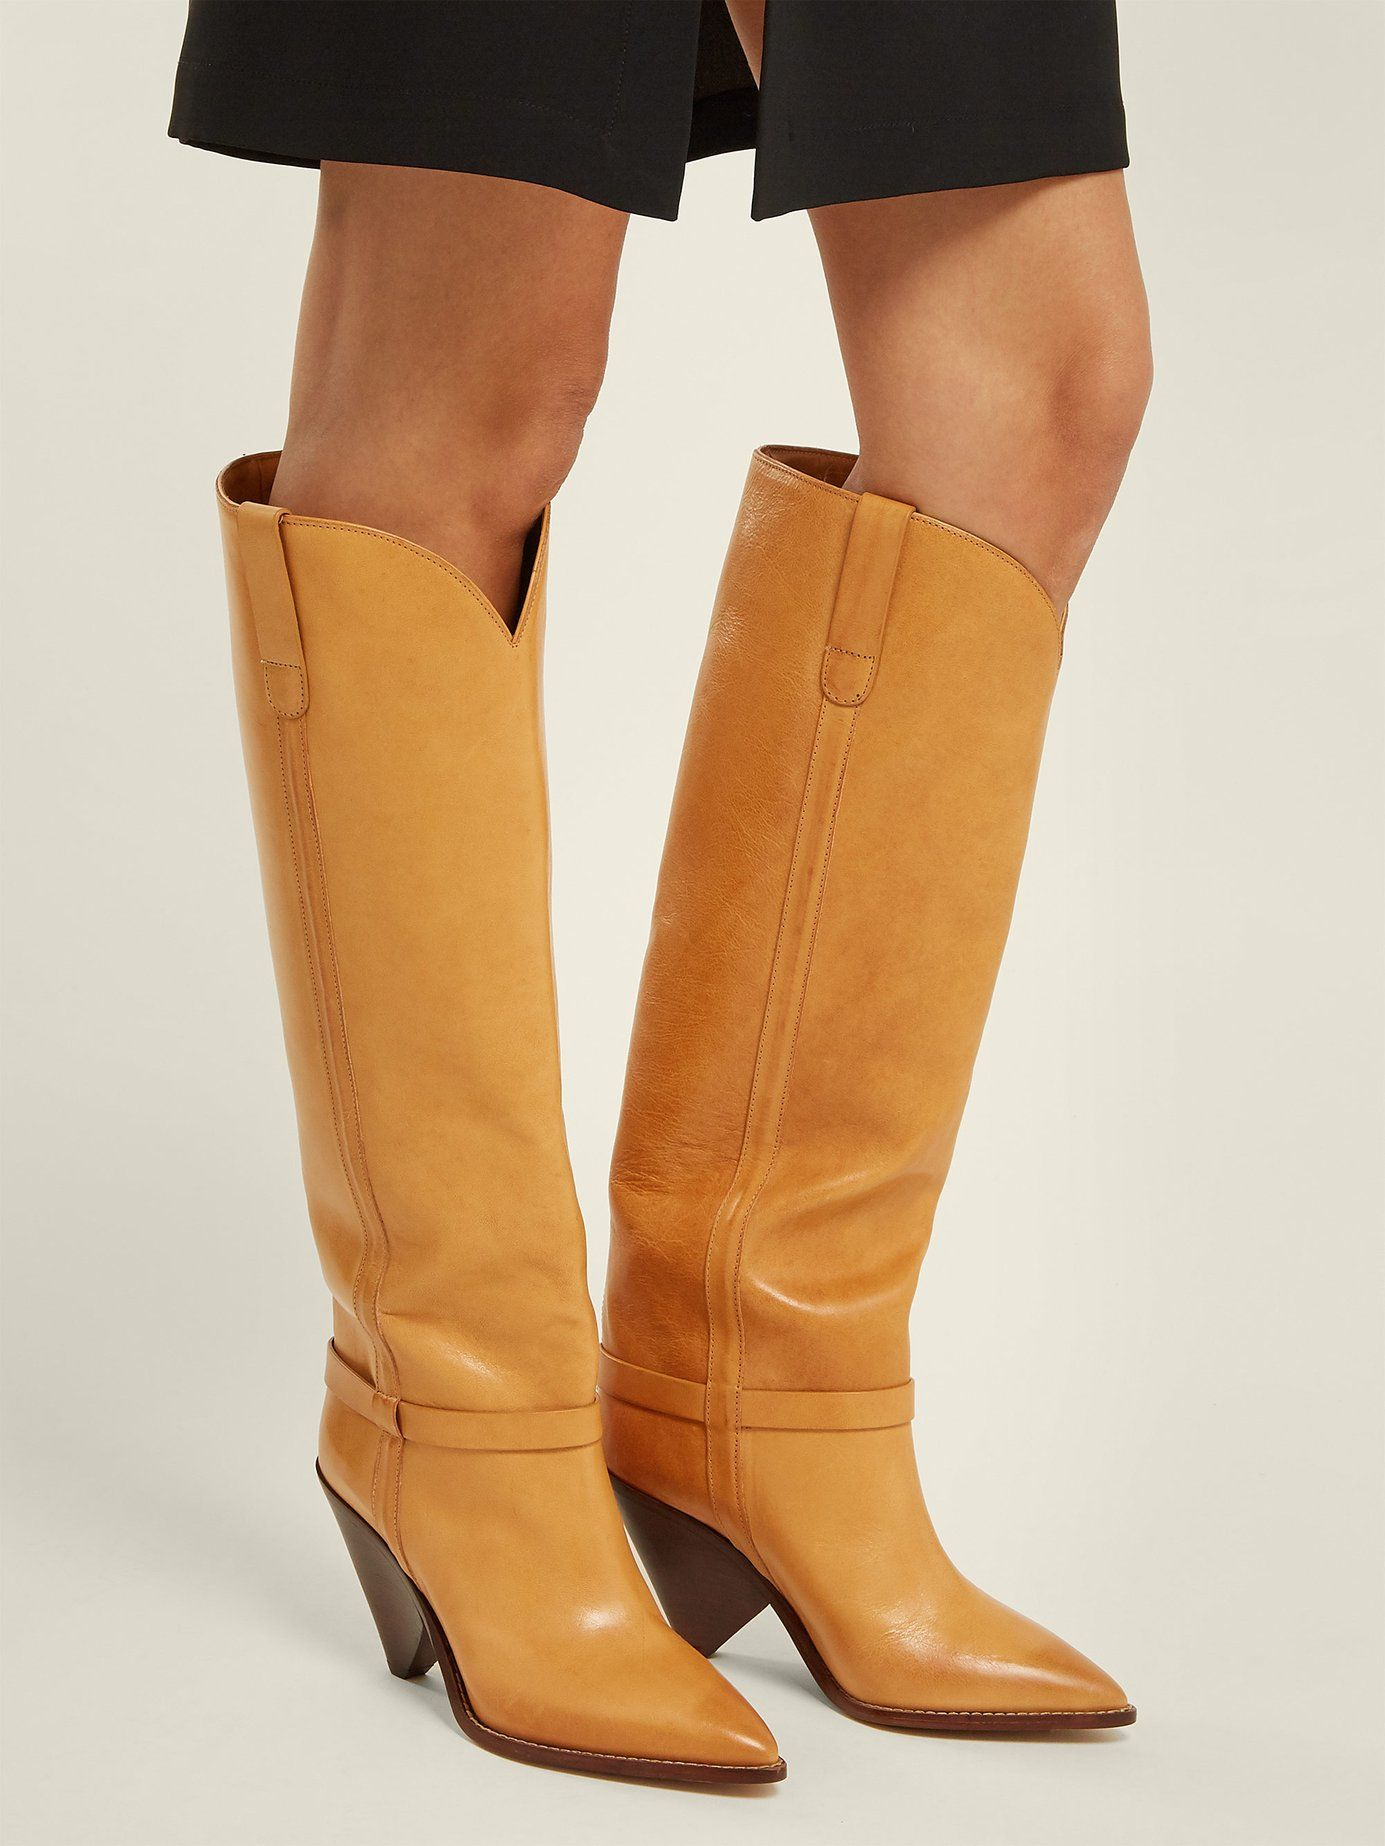 0f0b7b95280 Lafsten thigh-high leather boots